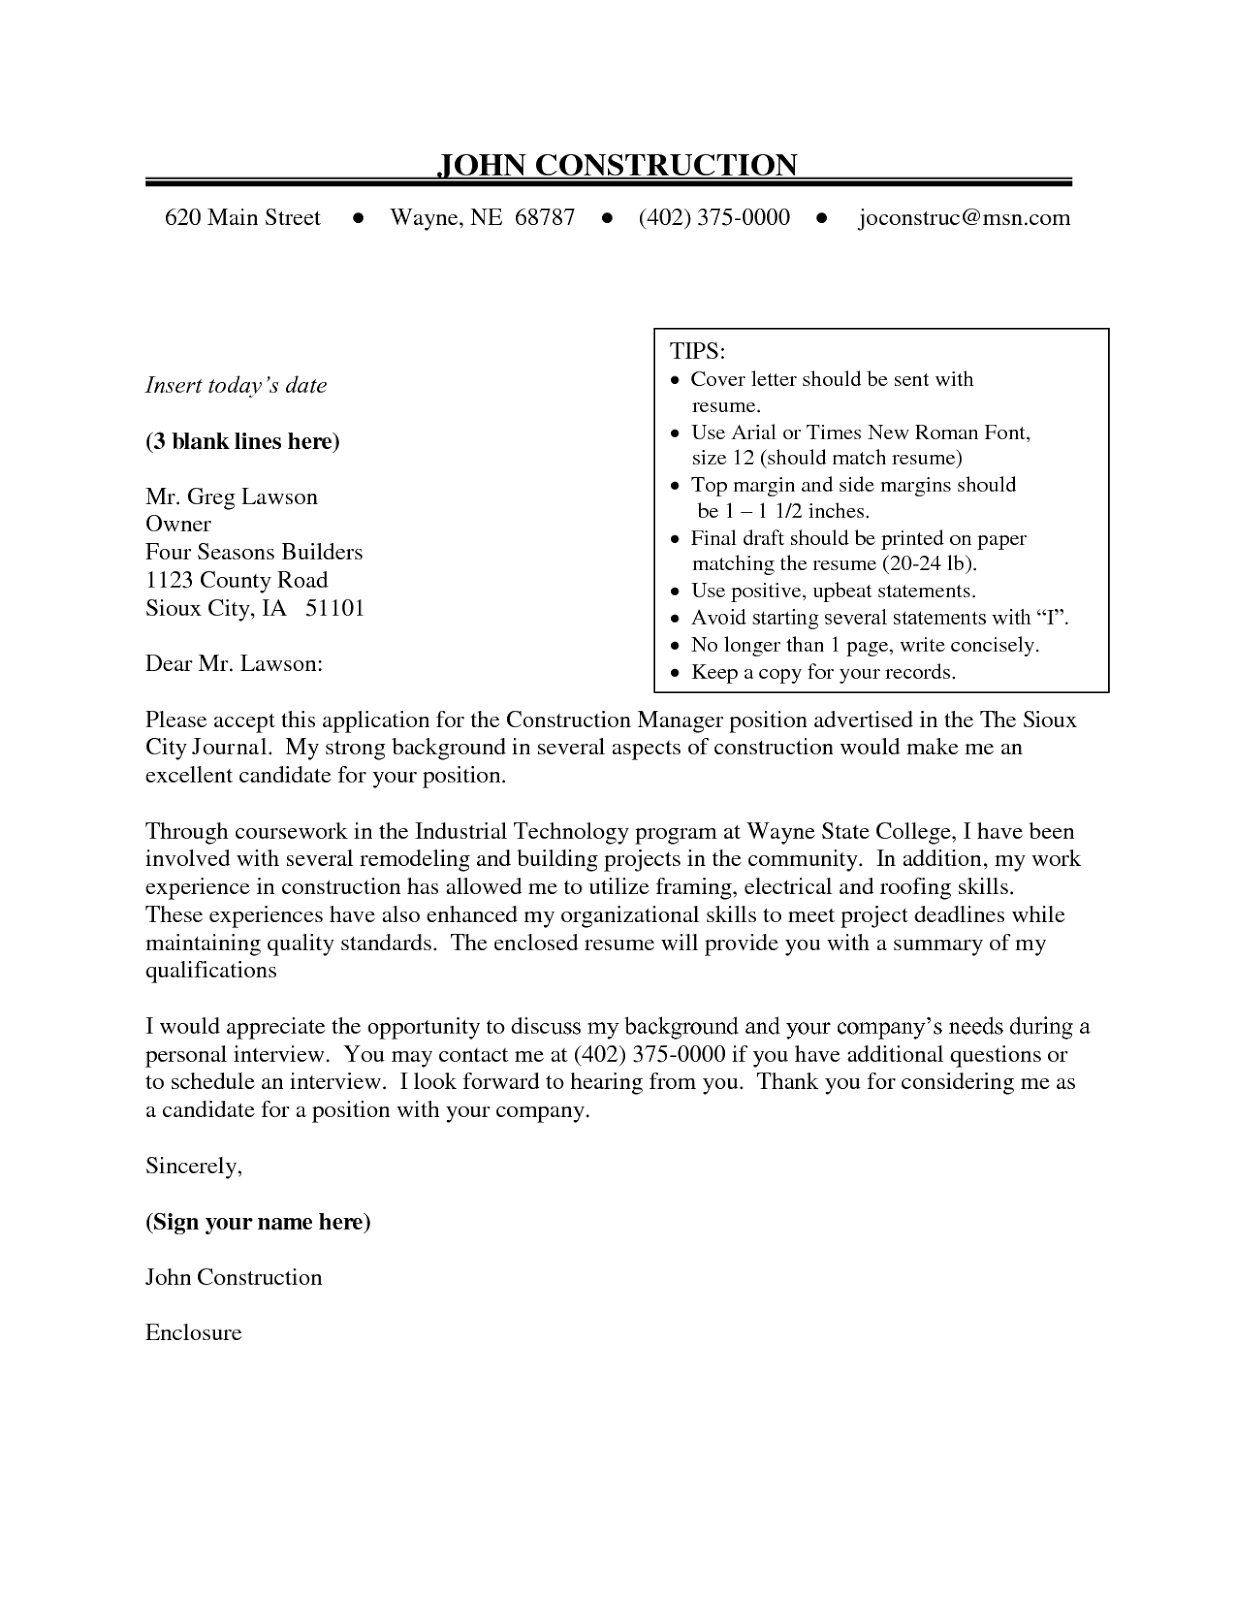 Great Template Harvard Business Review Resume Examples Lighteux Com